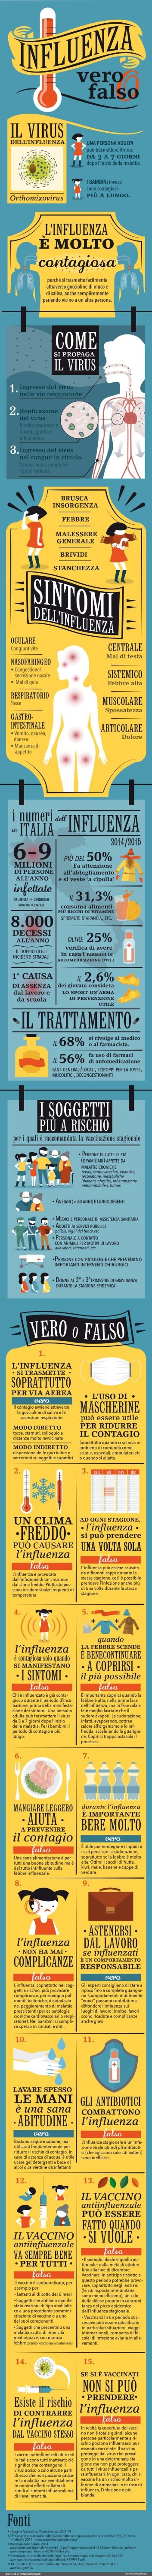 Influenza: vero o falso? per esseredonnaonline.it- illustrated by Alice Kle Borghi, kleland.com